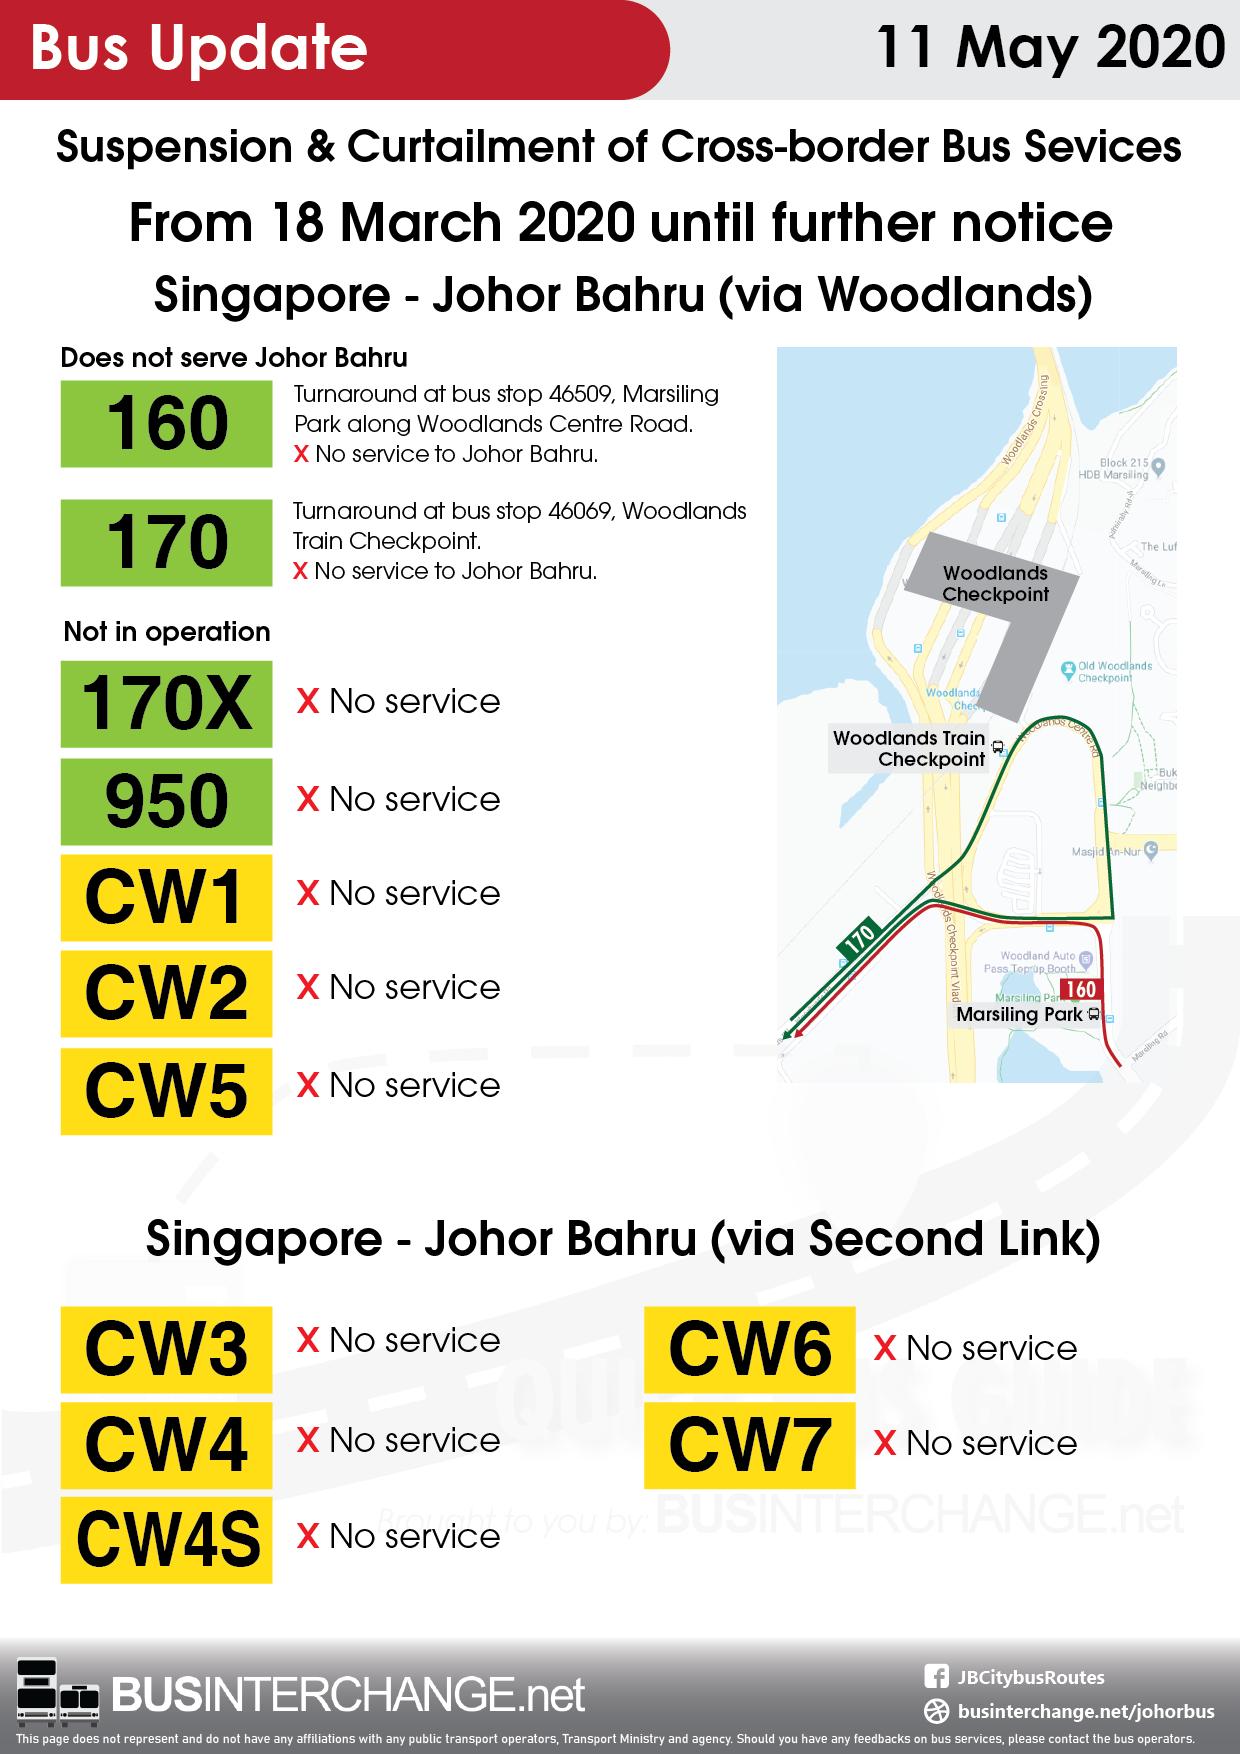 Suspension and curtailment of cross-border bus services between Singapore and Johor Bahru from 18 March 2020 until further notice.